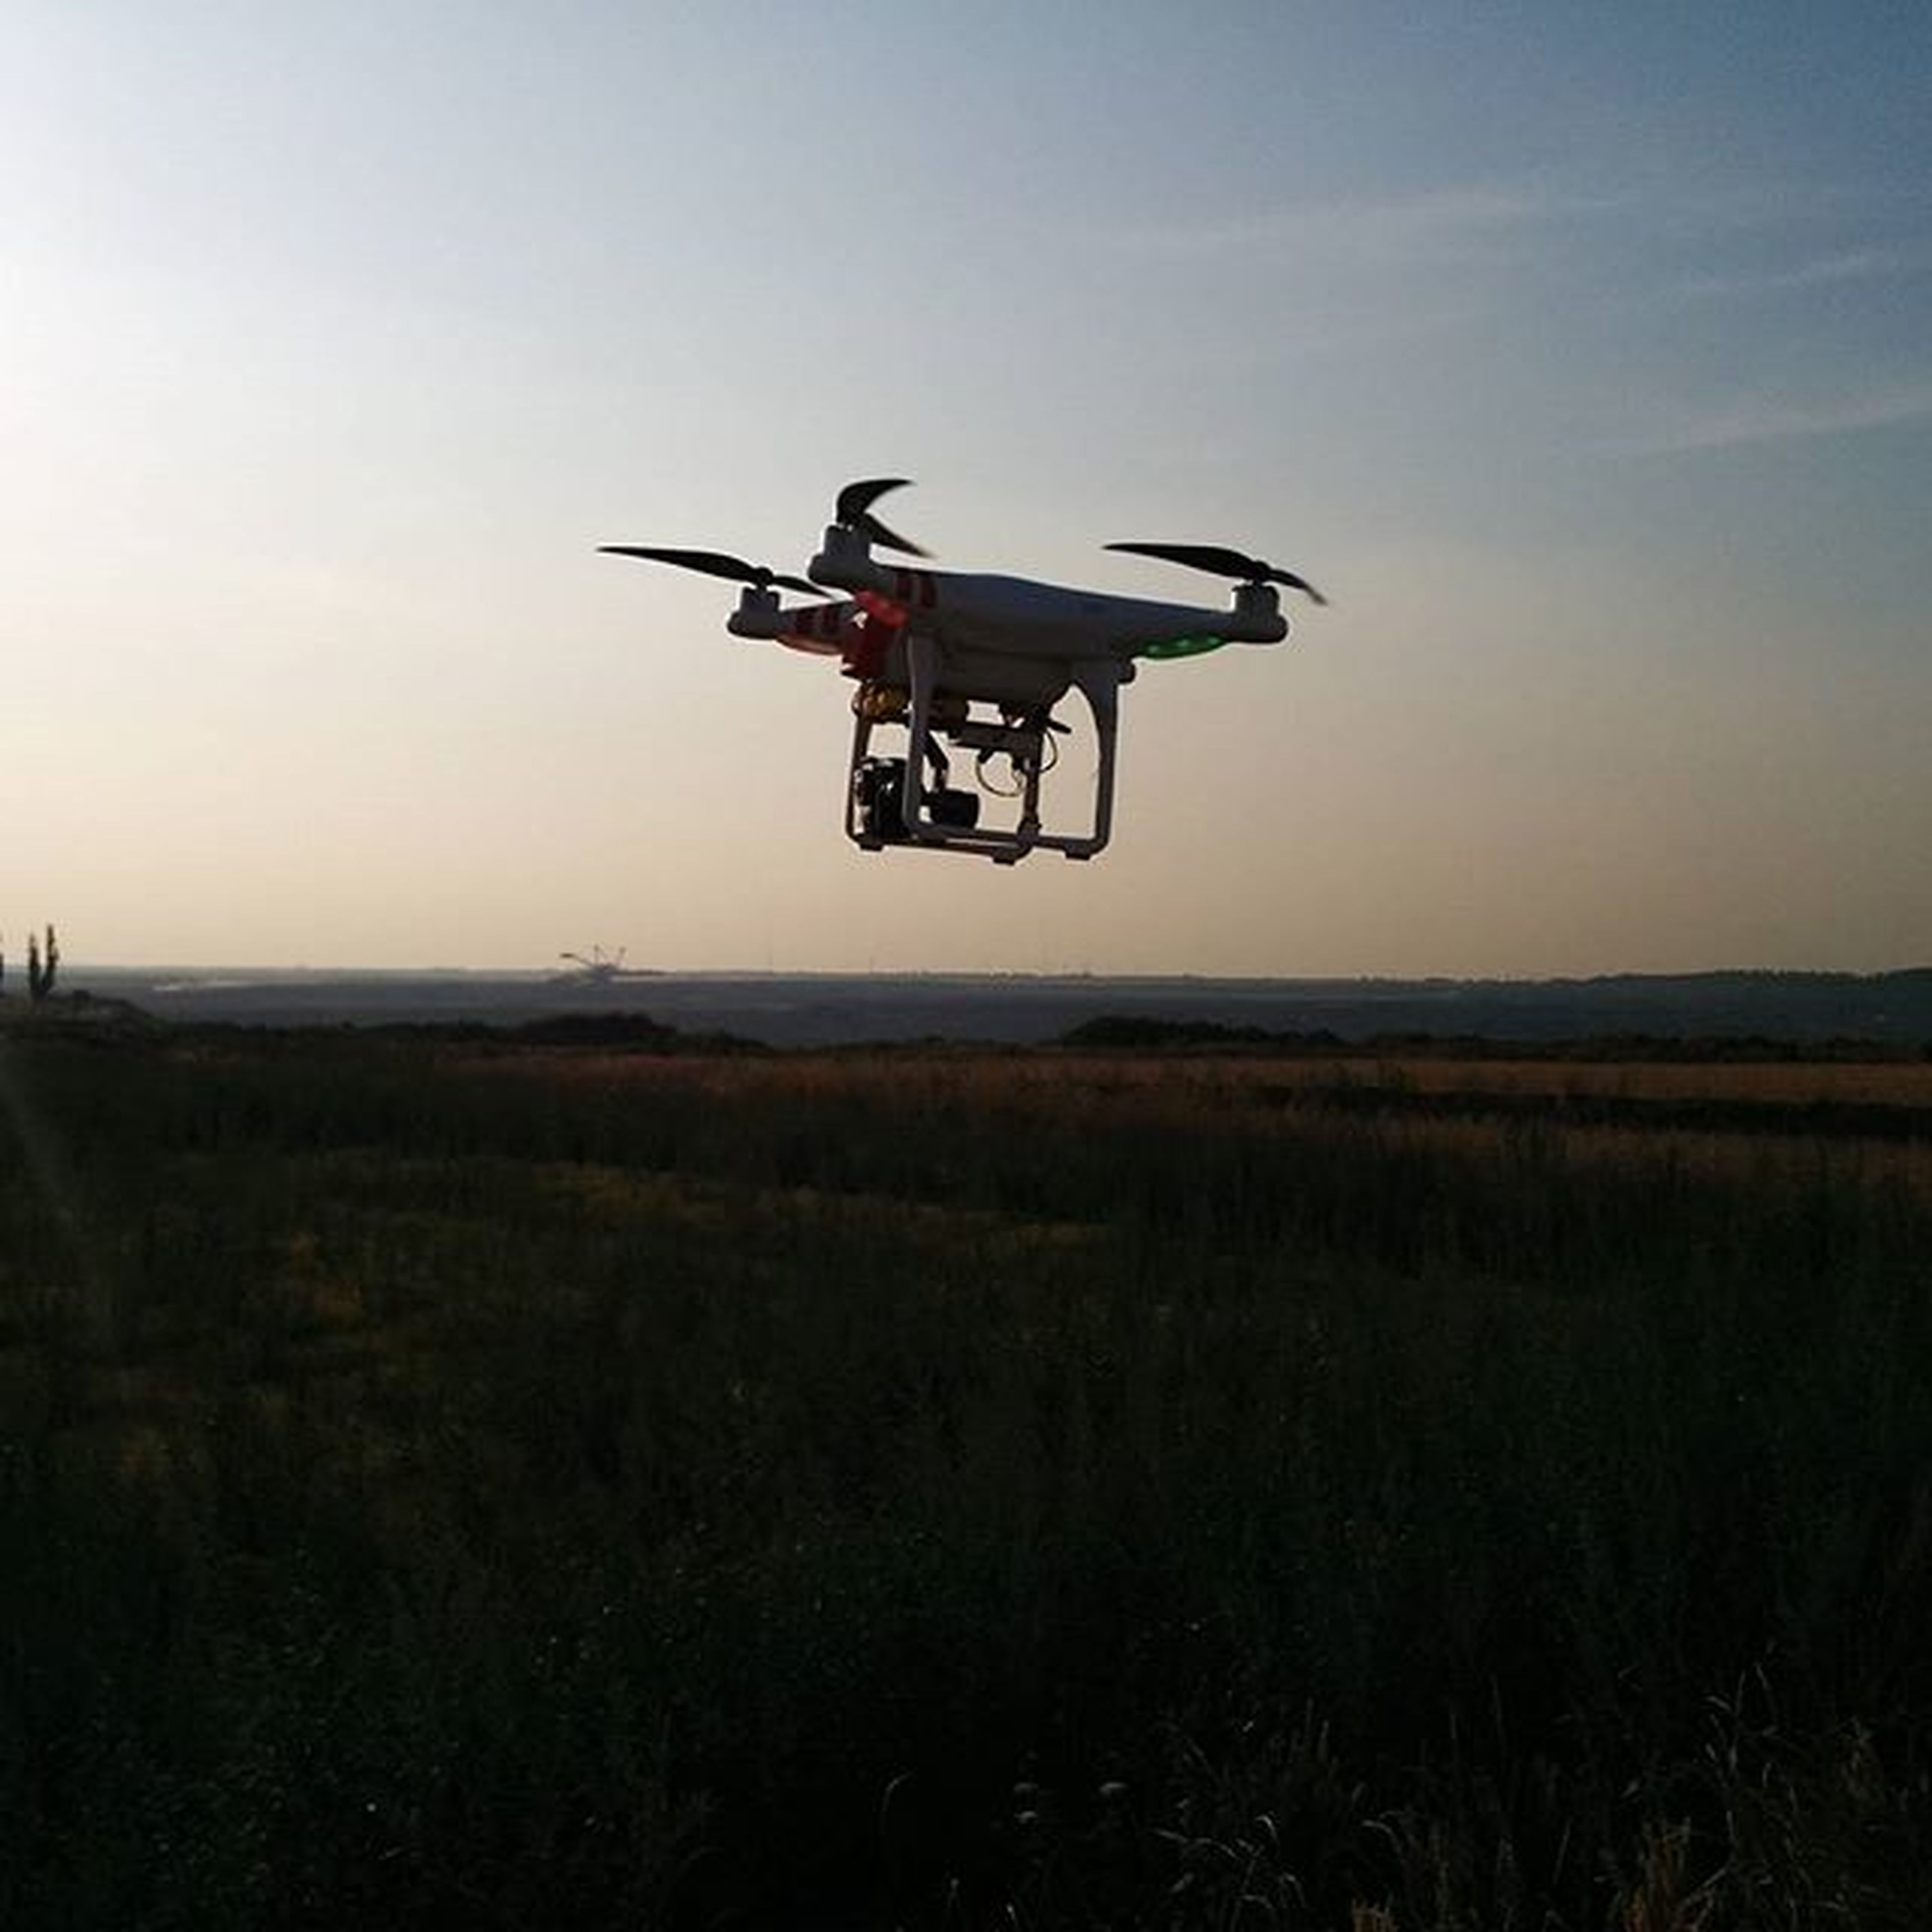 transportation, flying, mode of transport, mid-air, air vehicle, airplane, landscape, field, sky, clear sky, copy space, land vehicle, on the move, travel, nature, scenics, sunset, outdoors, grass, helicopter